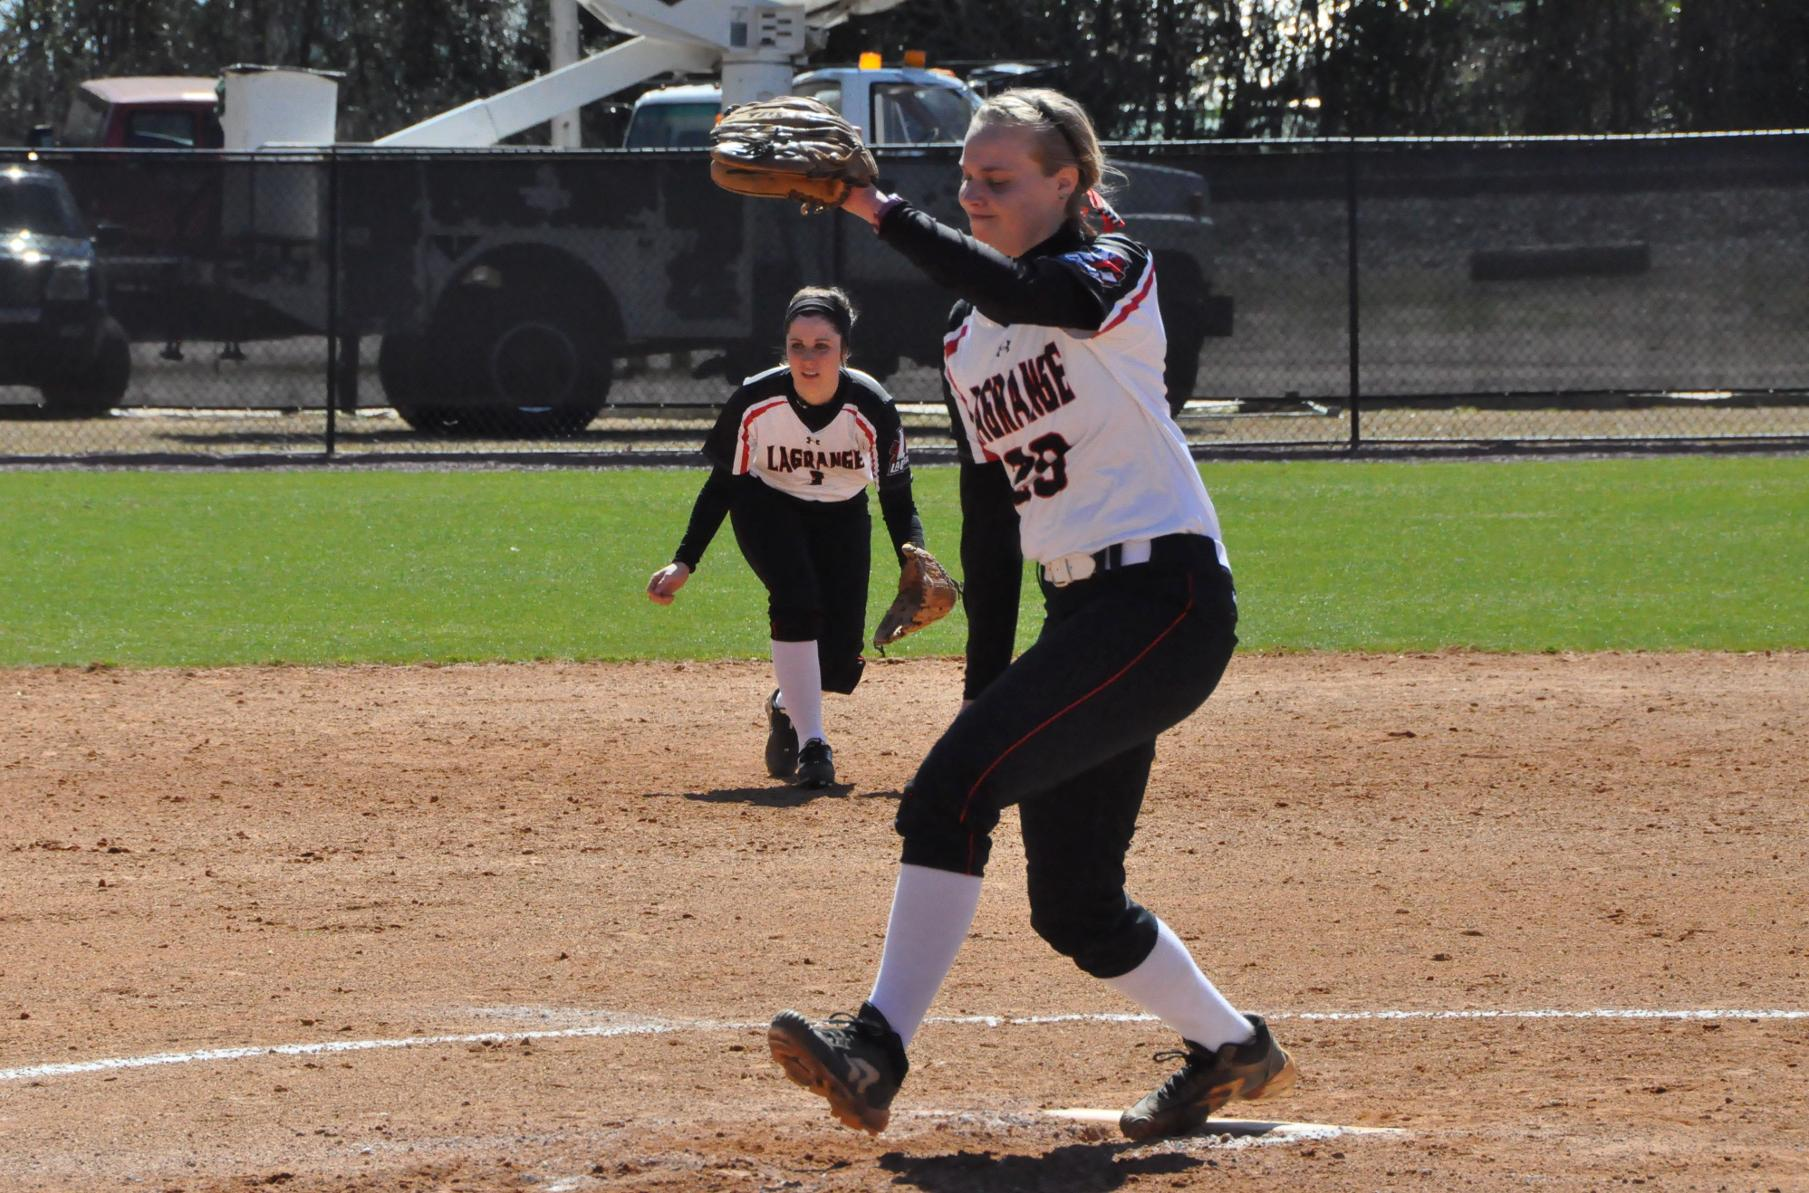 Softball: Big inning carries No. 10 Berry past Panthers in non-conference game Wednesday